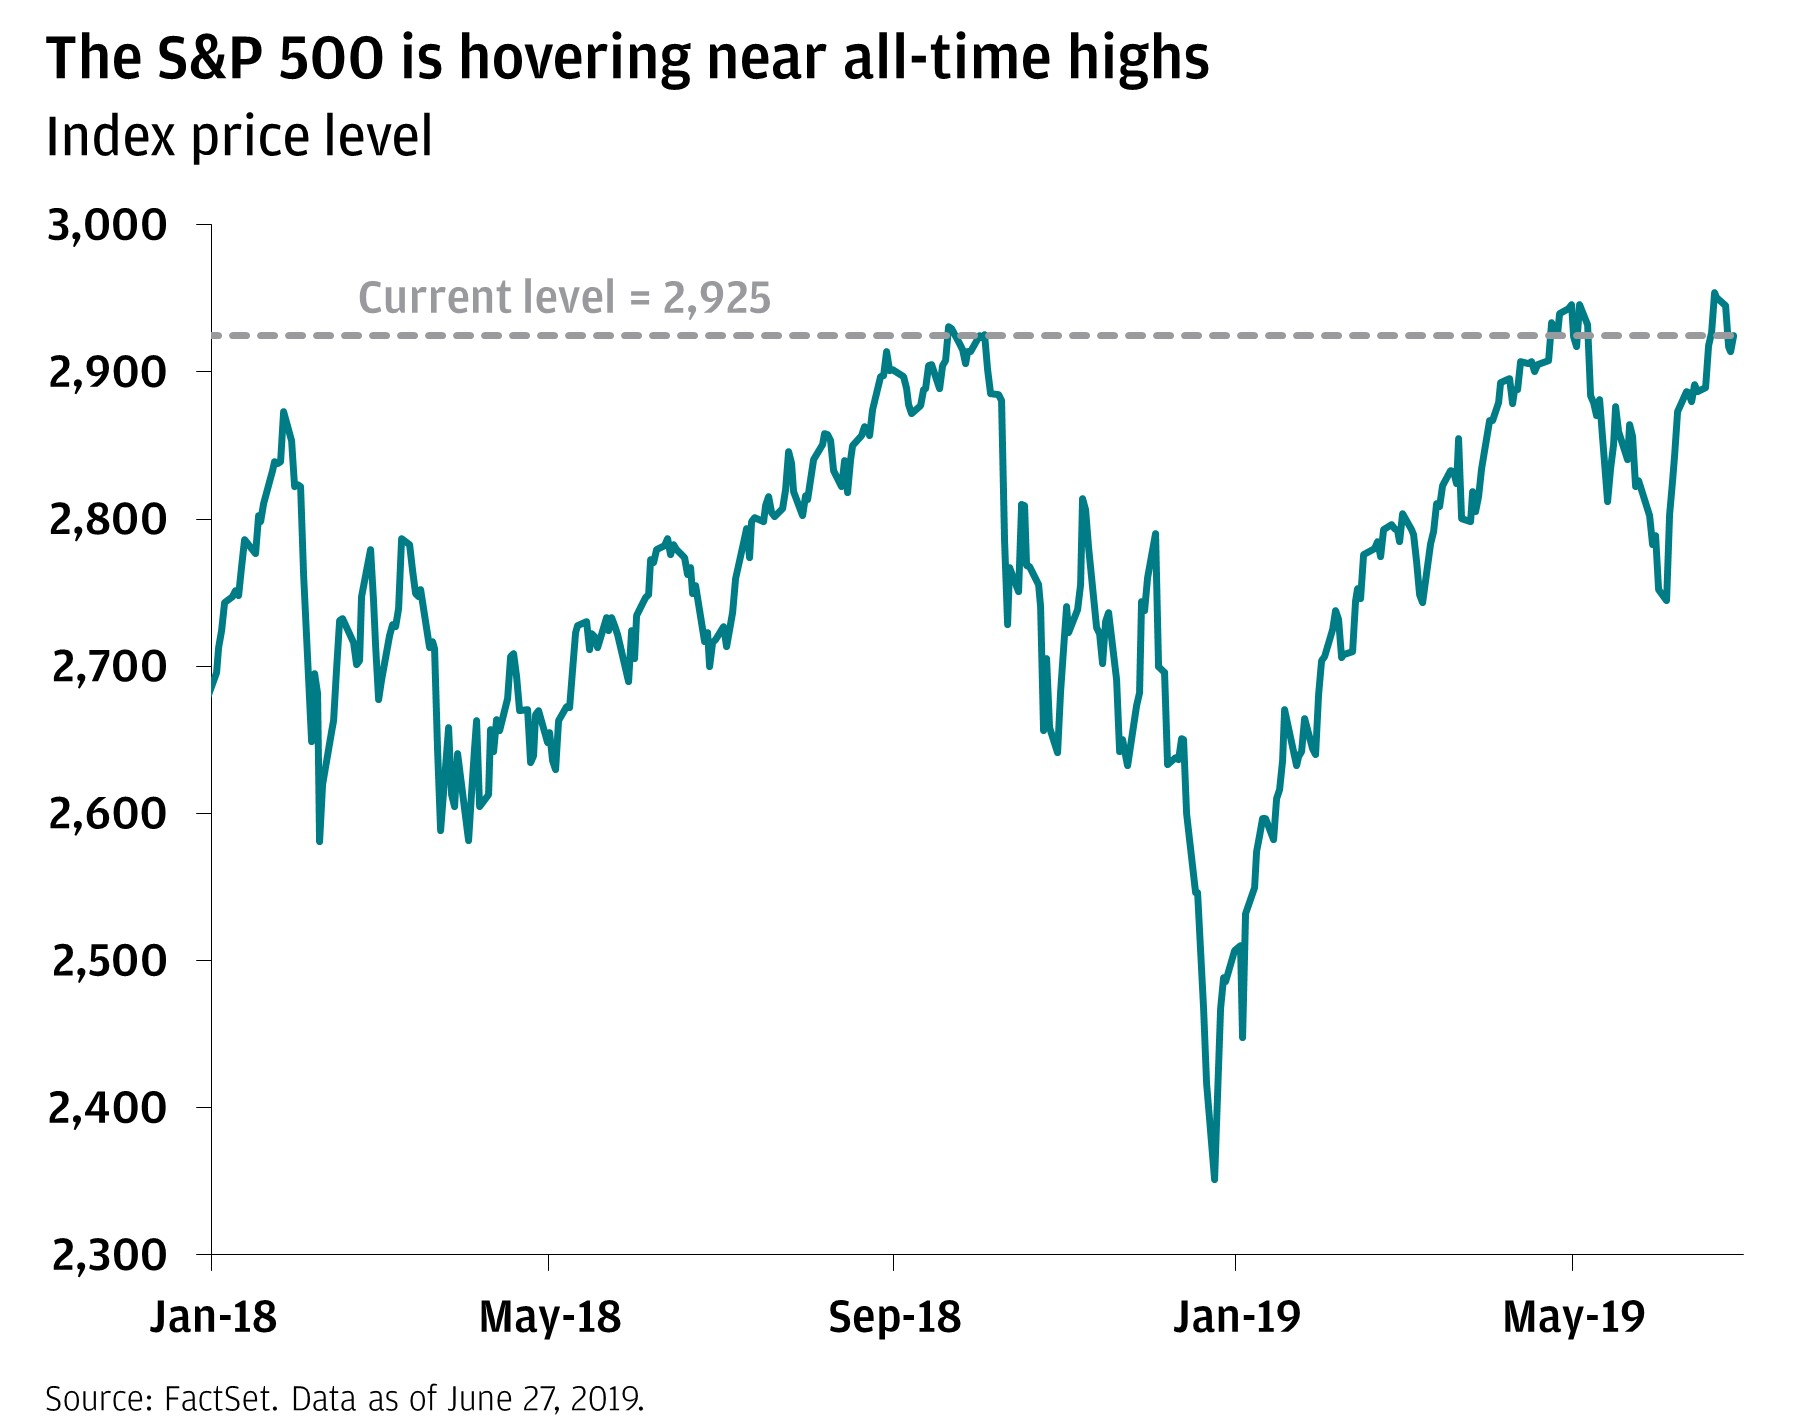 The S&P 500 is hovering near all-time highs Line chart shows S&P Index price level from January 2018 through June 2019. The line is currently close to the highest levels it's been during this time period.